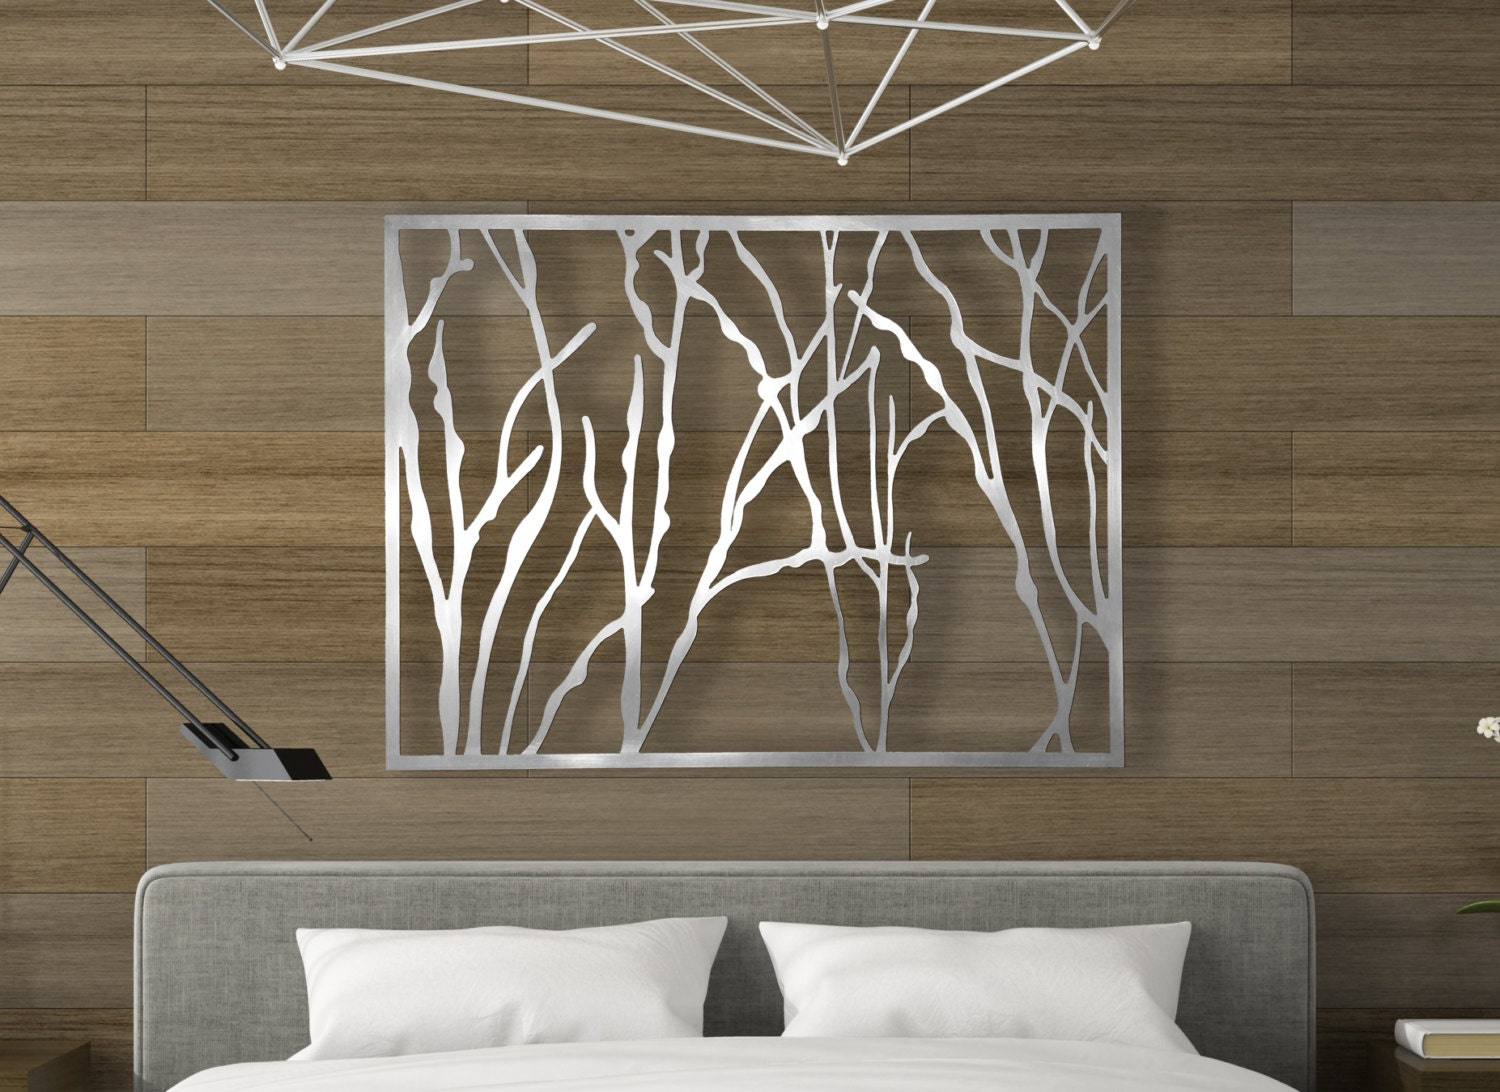 laser cut metal decorative wall art panel sculpture for home. Black Bedroom Furniture Sets. Home Design Ideas